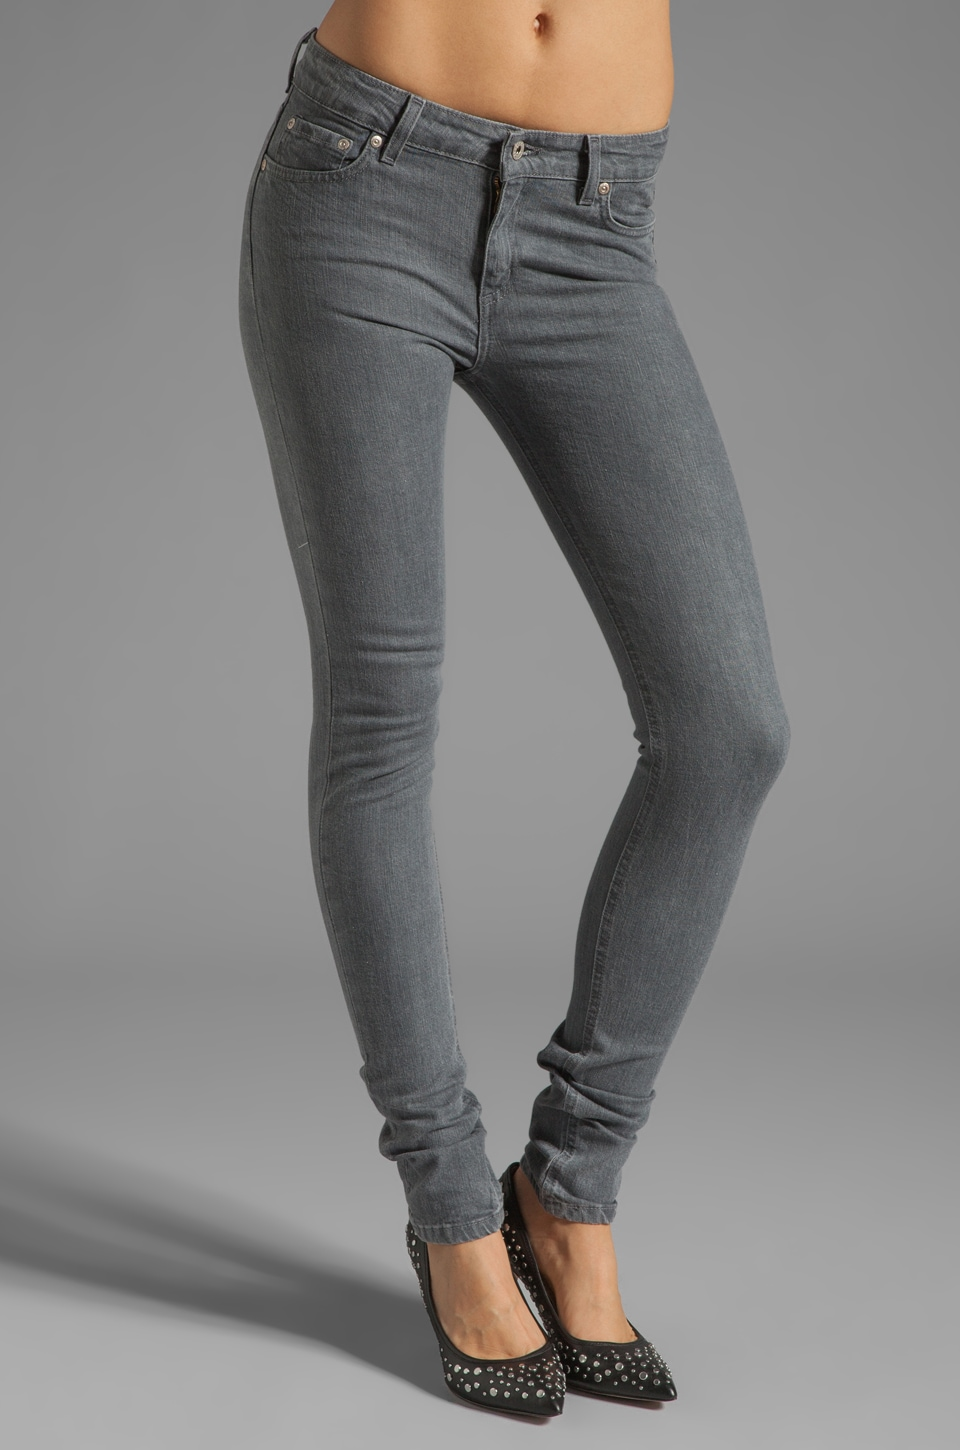 Naked & Famous Denim The Skinny 11 oz in Grey Stretch